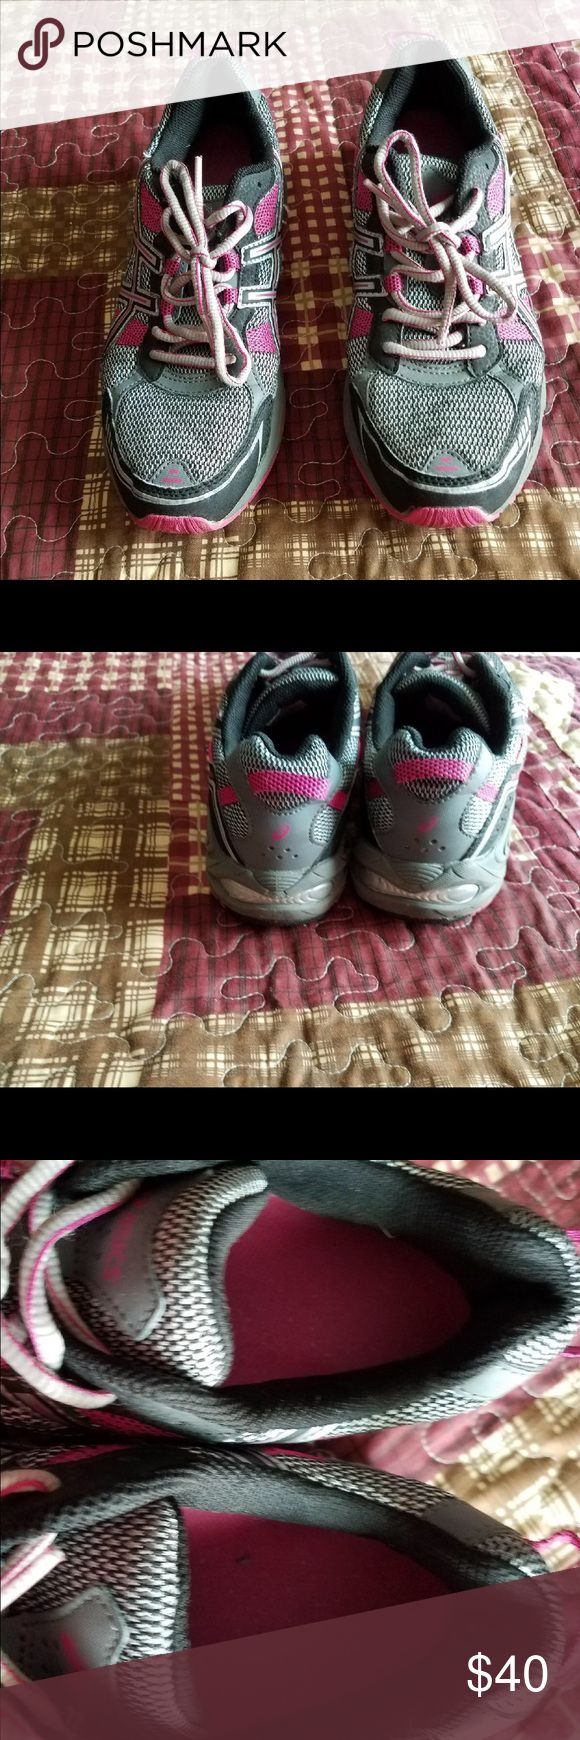 Asics tennis shoes Asics tennis shoes womens in good condition size 11 really comfortable Asics Shoes Sneakers